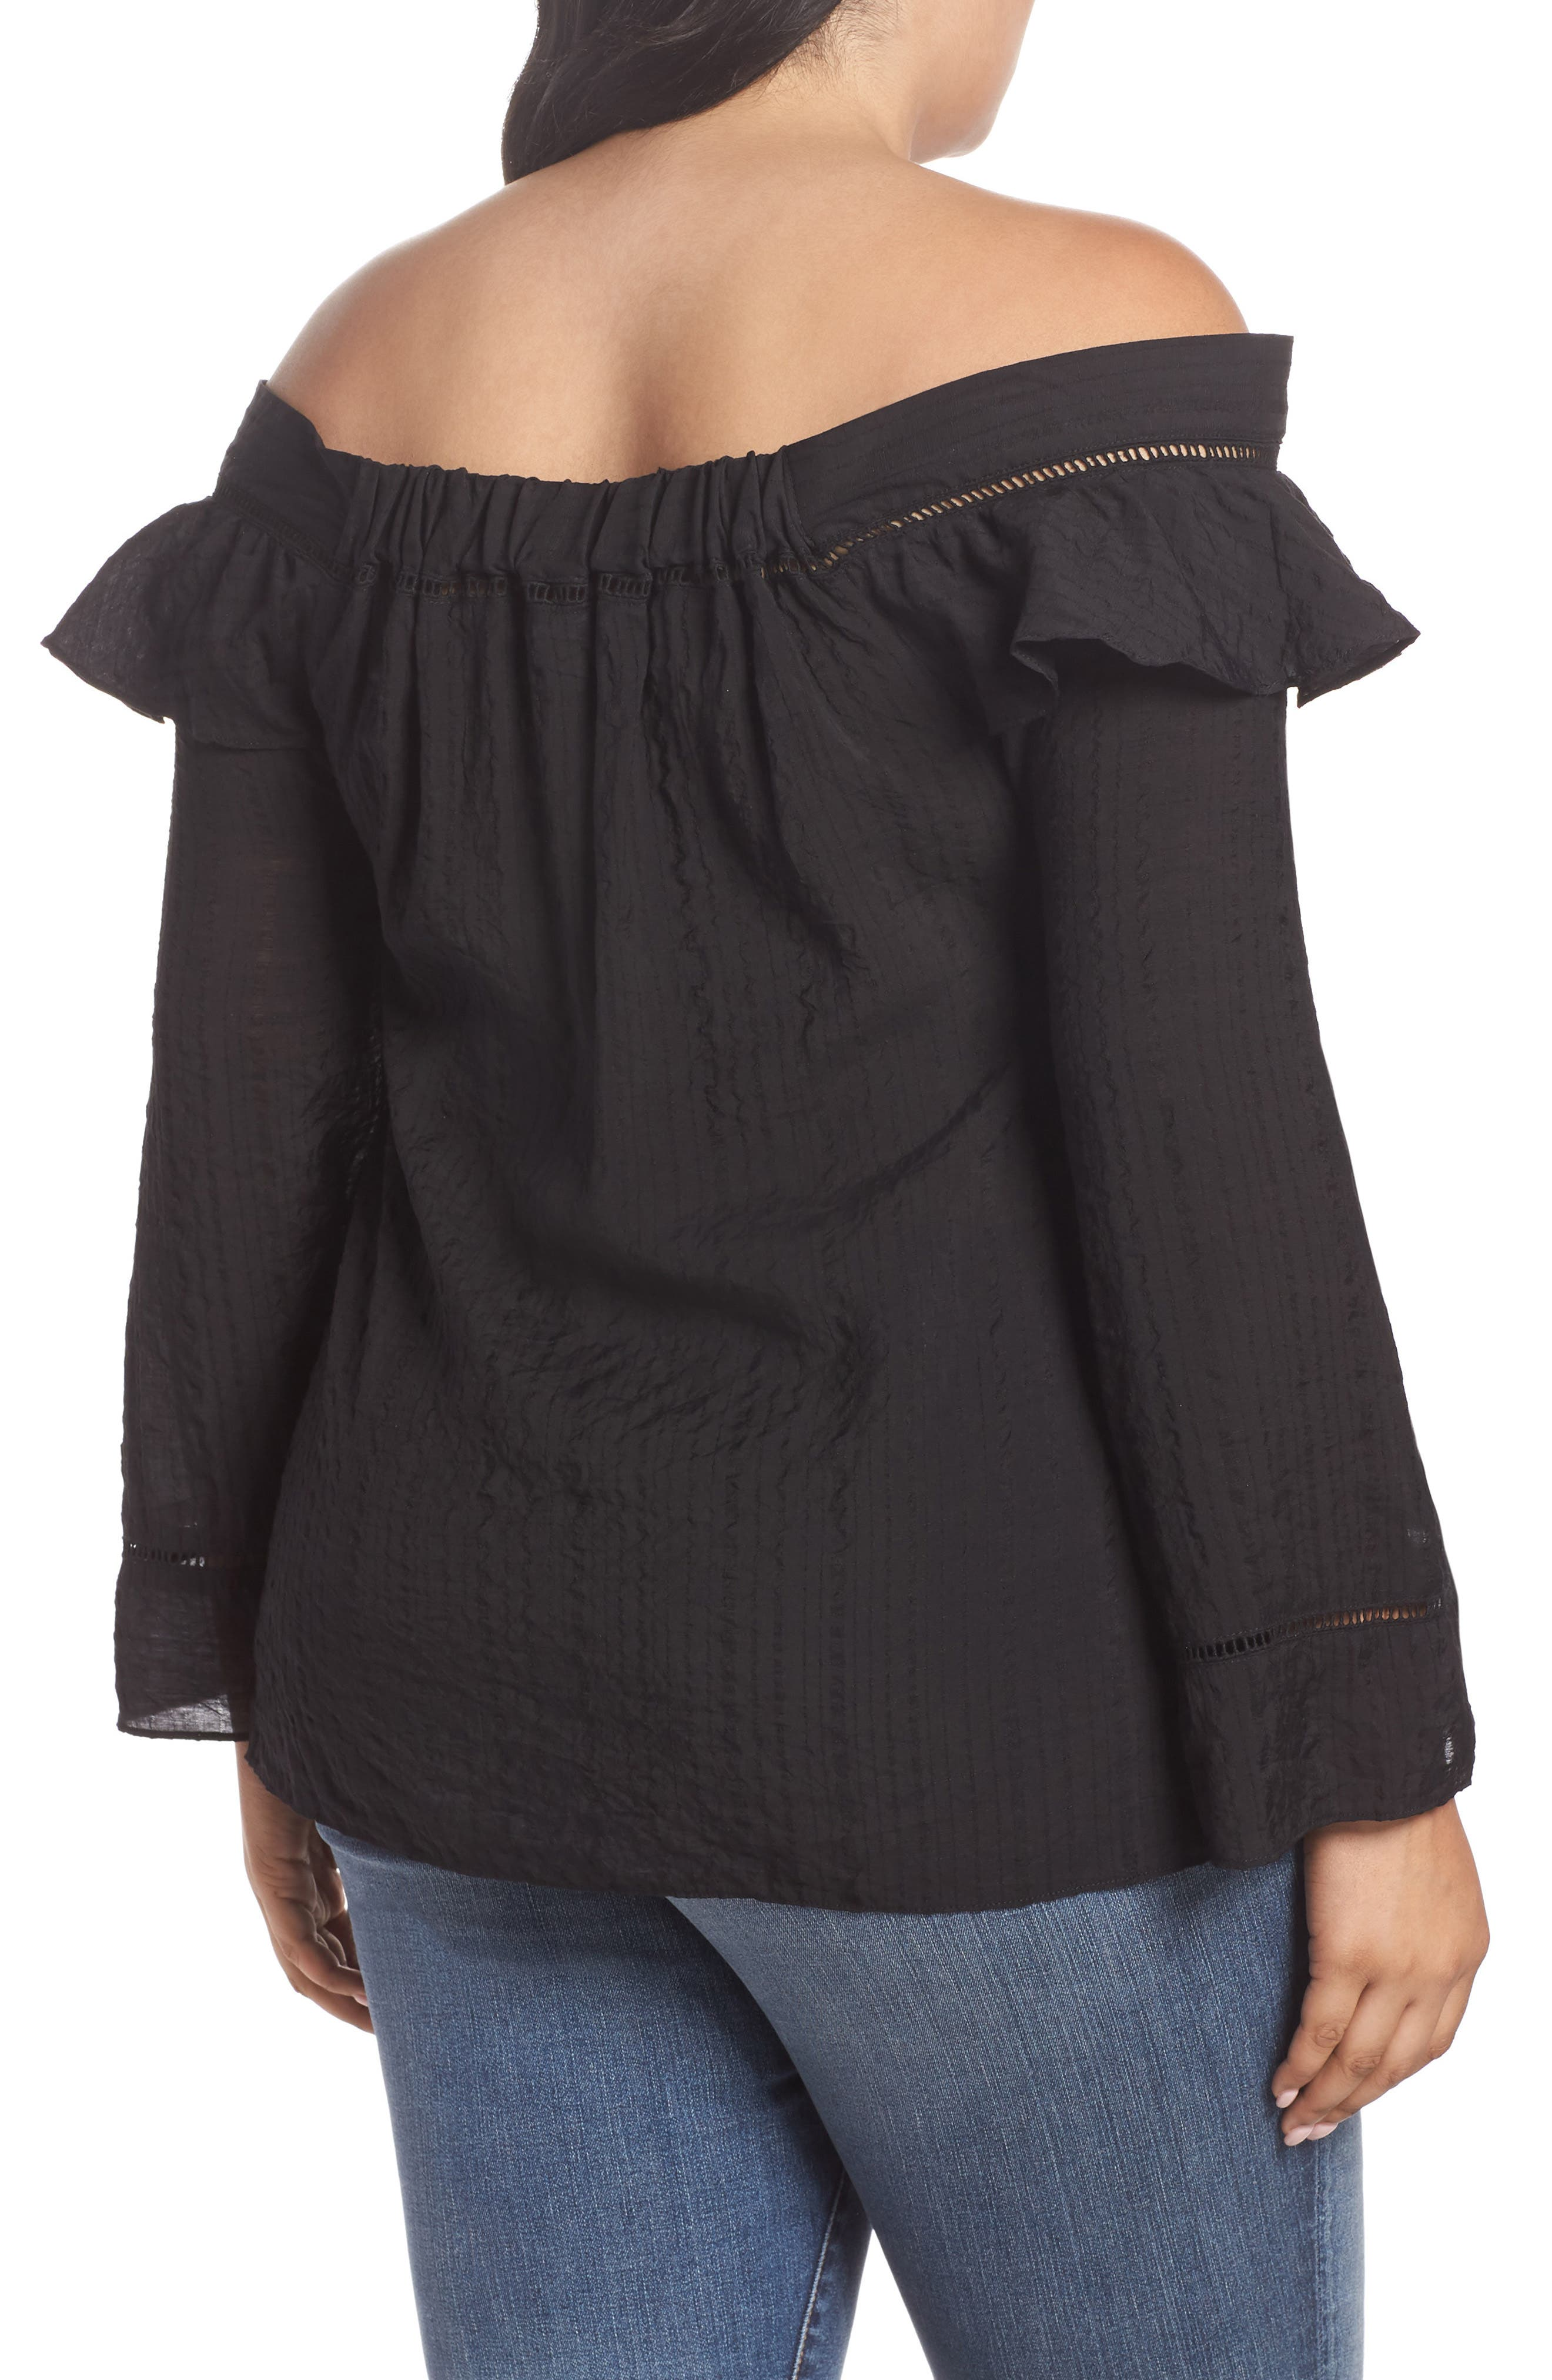 Ruffle Tie Off the Shoulder Top,                             Alternate thumbnail 2, color,                             001